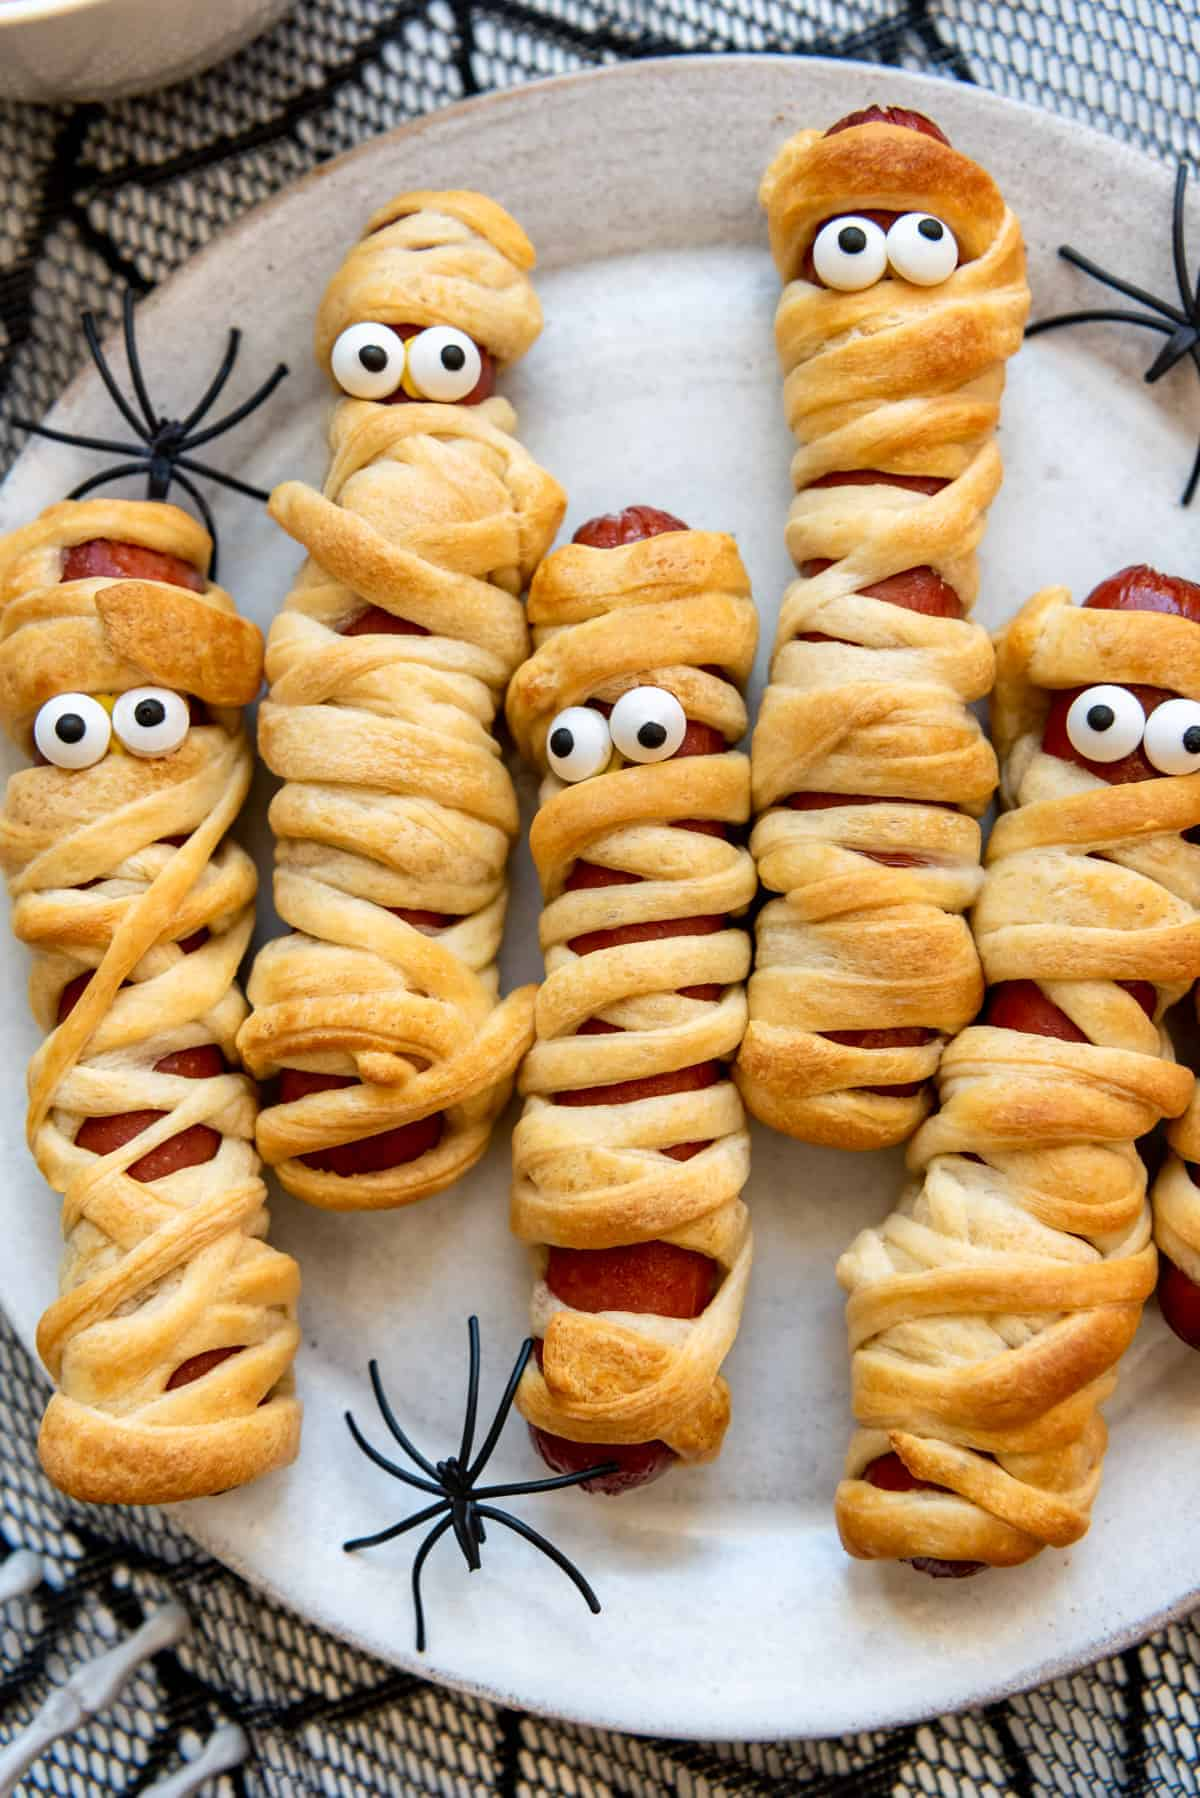 a close image of beef hot dogs wrapped in crescent roll dough to look like mummies for Halloween.